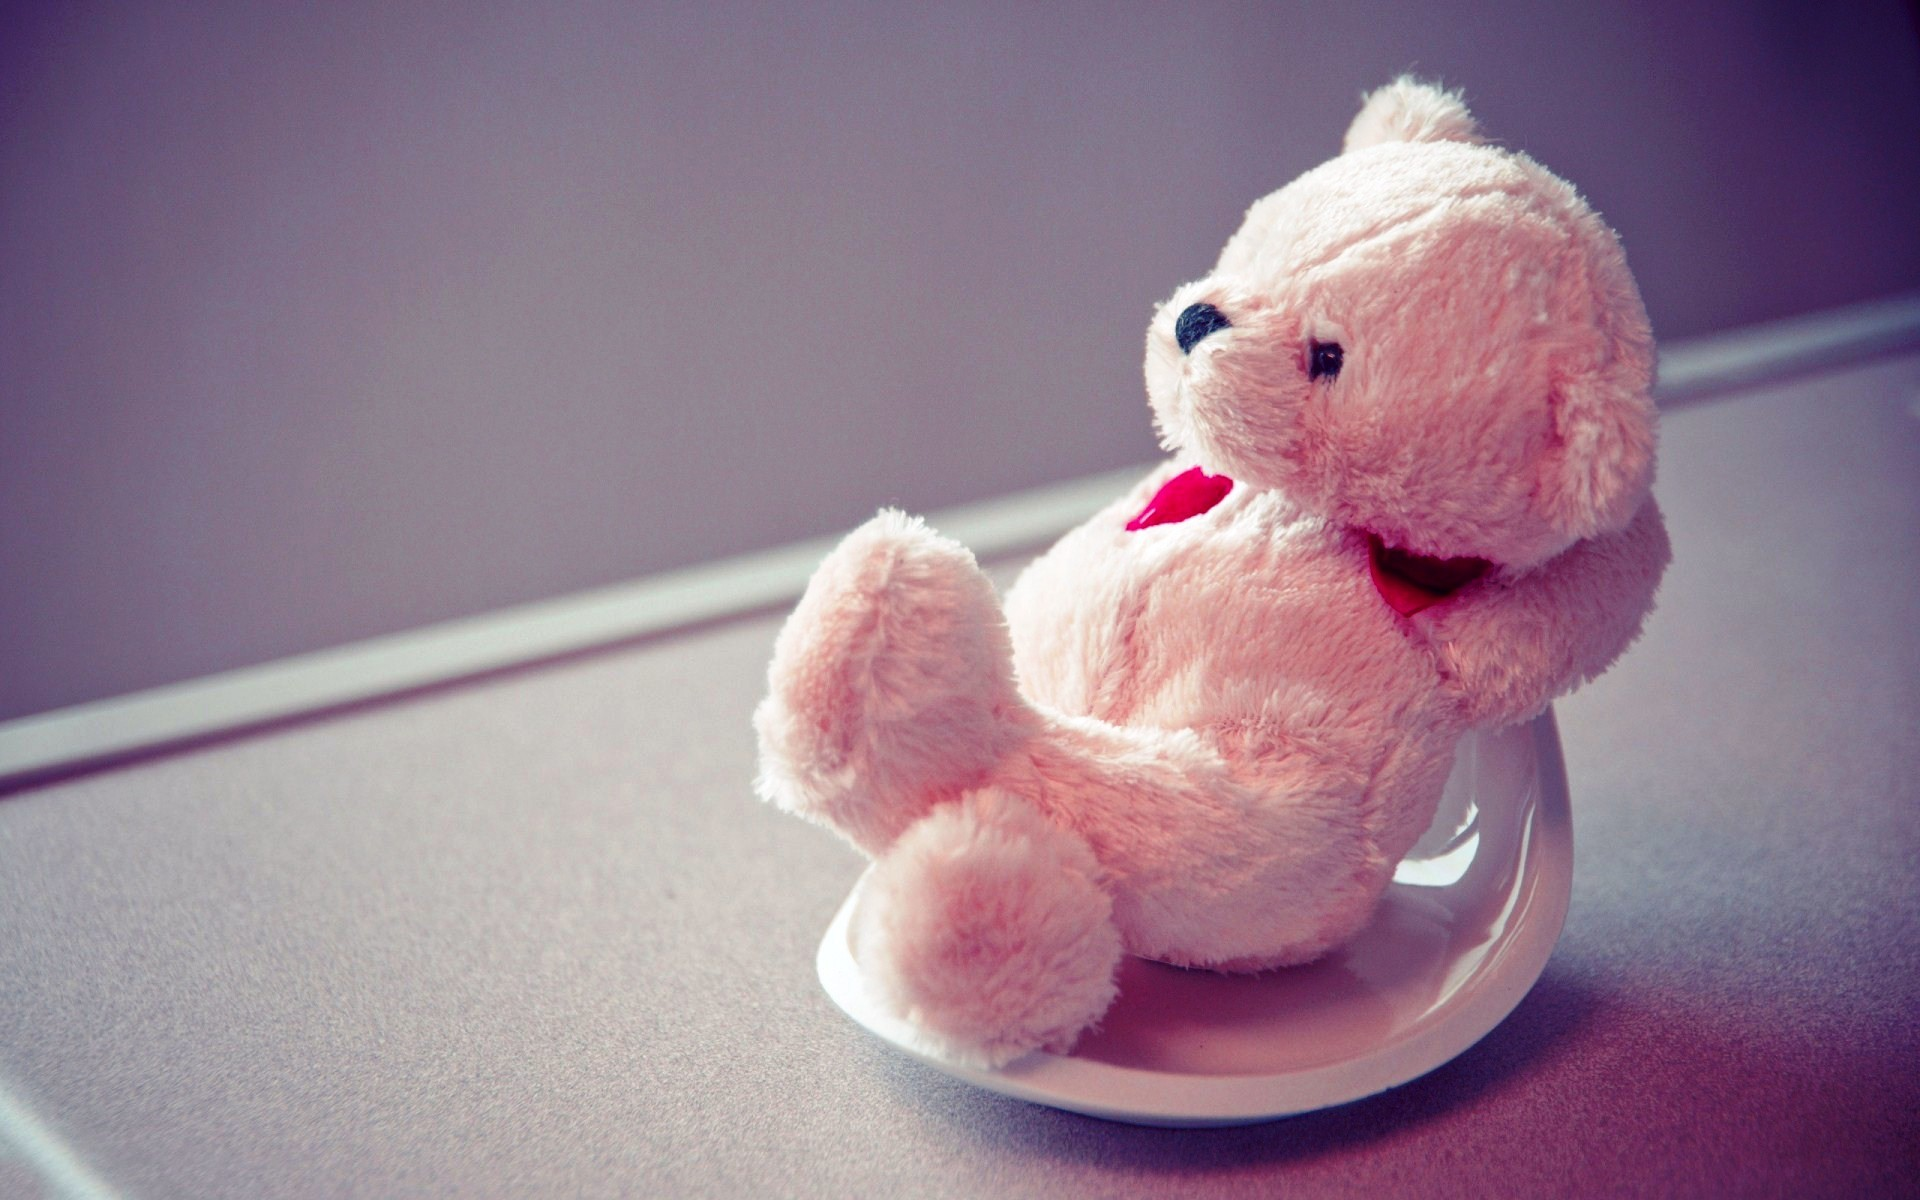 Teddy bear wallpapers hd pictures – one hd wallpaper pictures.